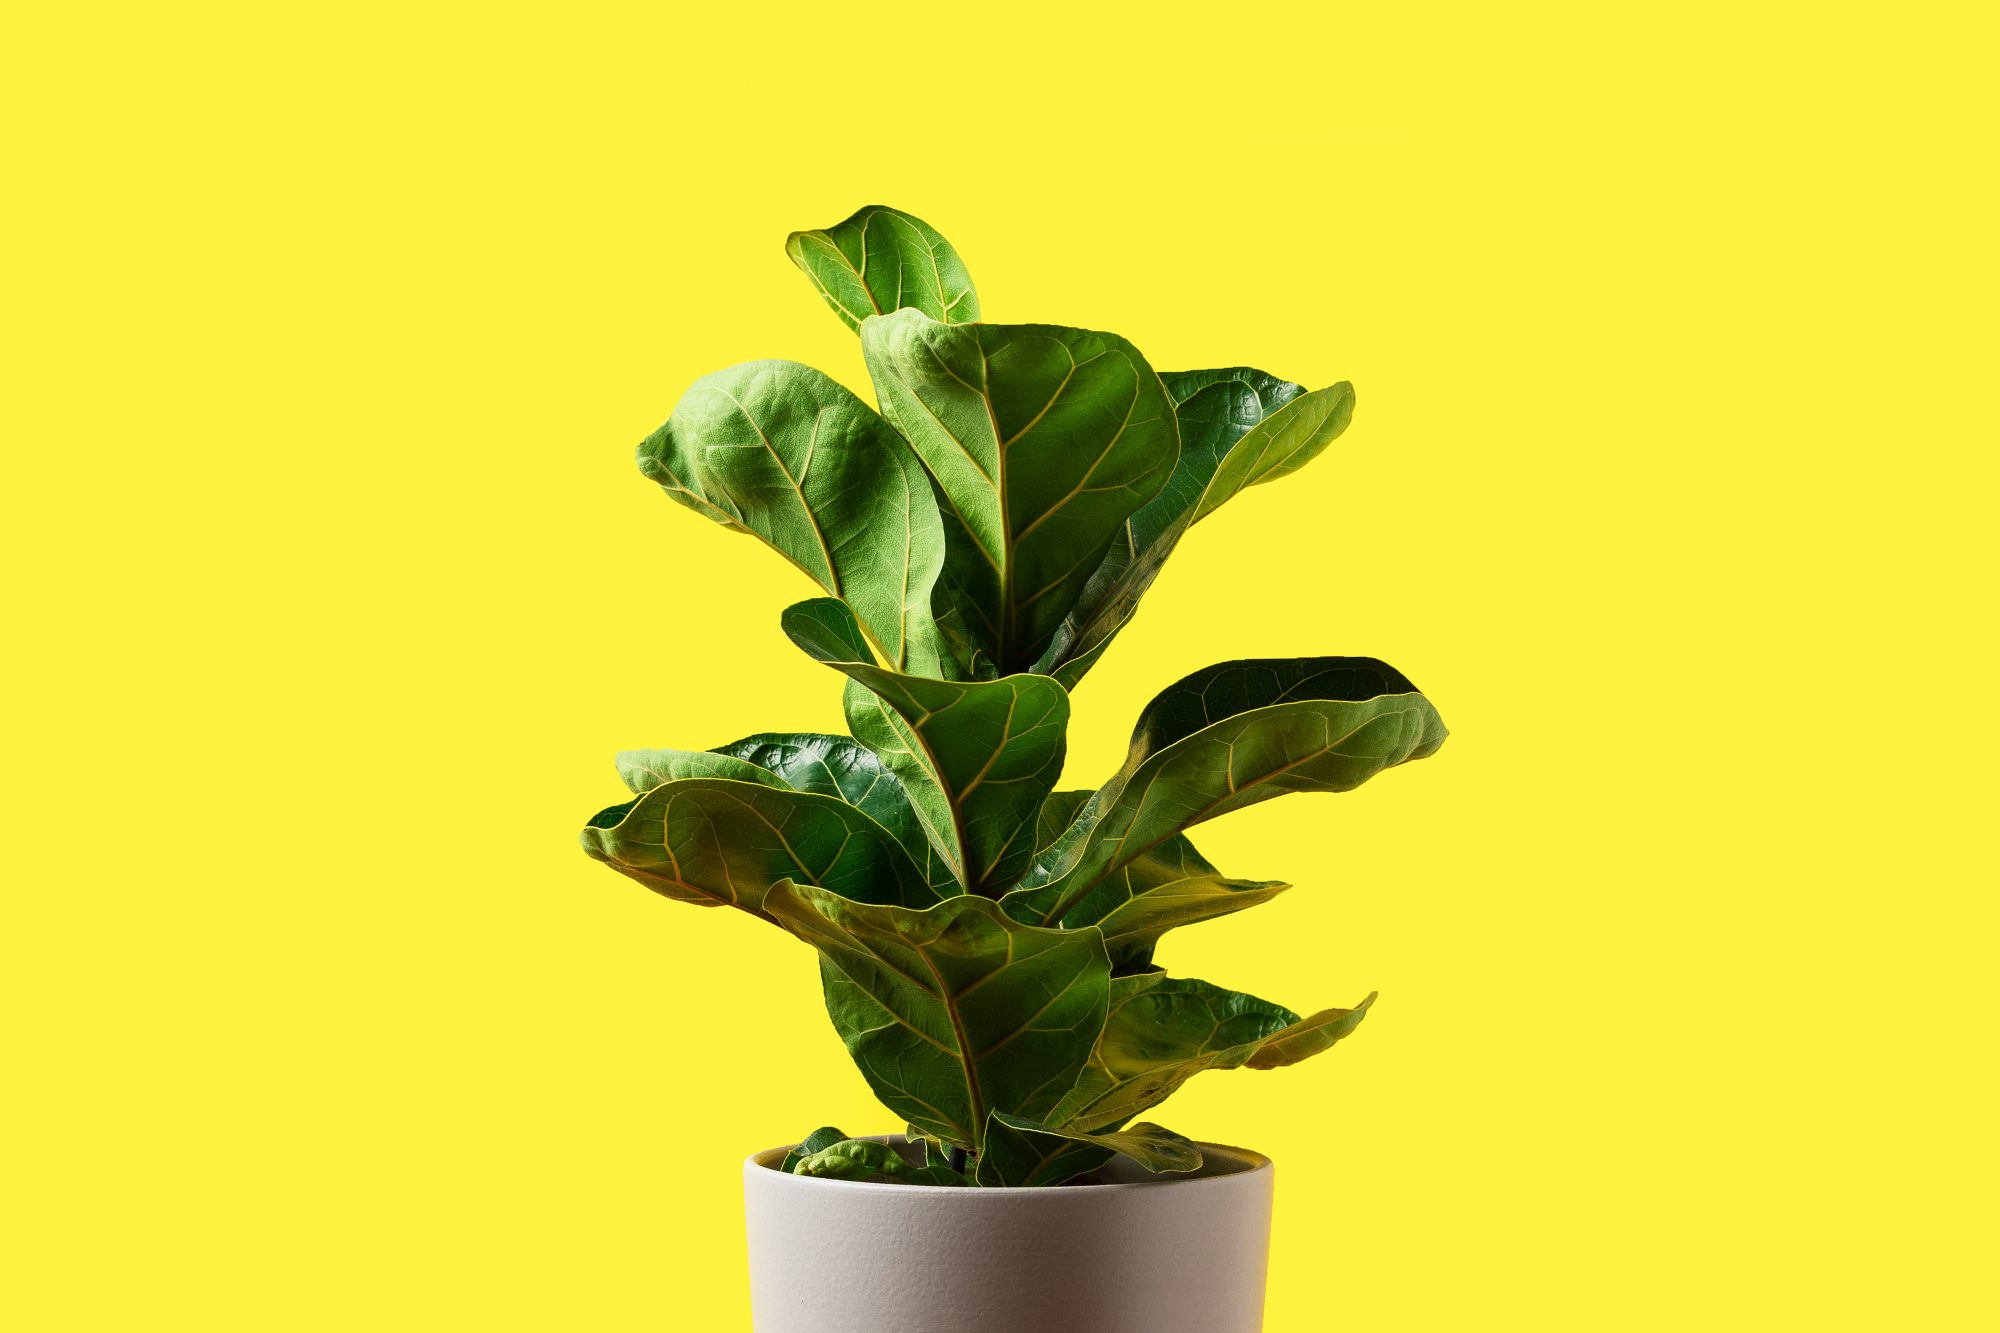 A Fiddle Leaf Fig or Ficus lyrata with large, green, shiny leaves planted isolated on yellow background. Home gardening. Banner with copy space